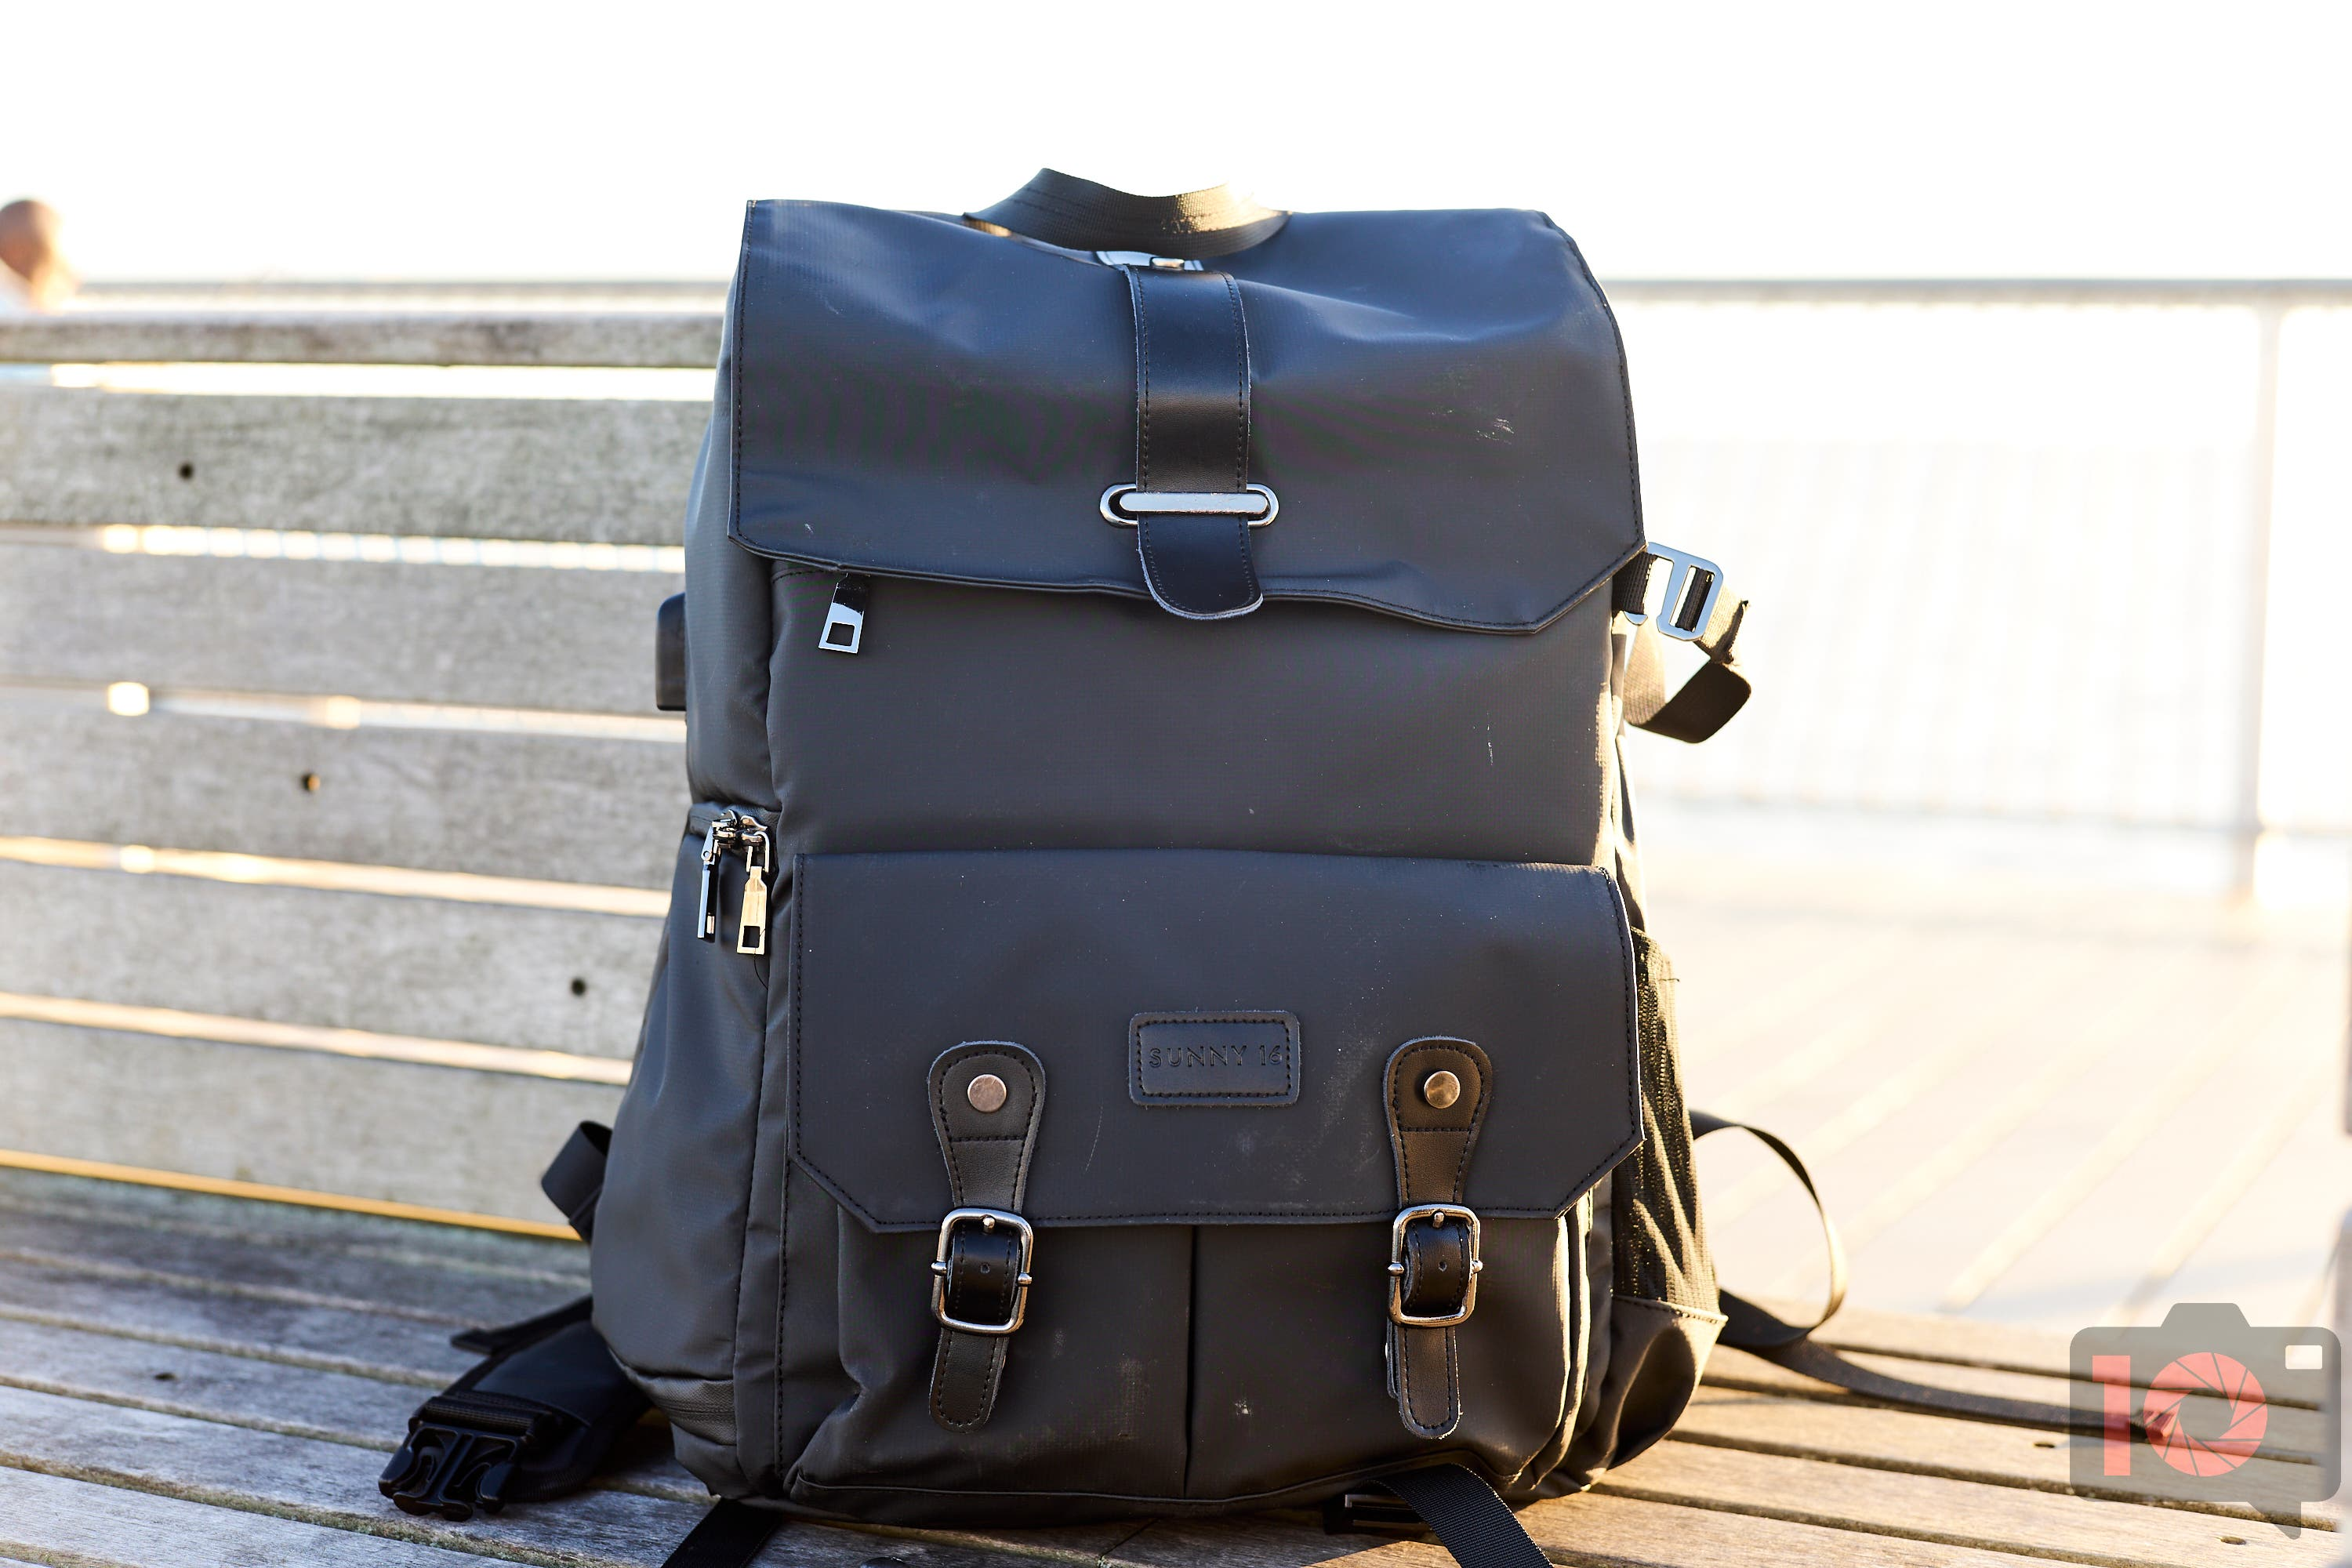 This Bag Has a Big Flaw. Sunny 16 Voyager Camera Bag Review